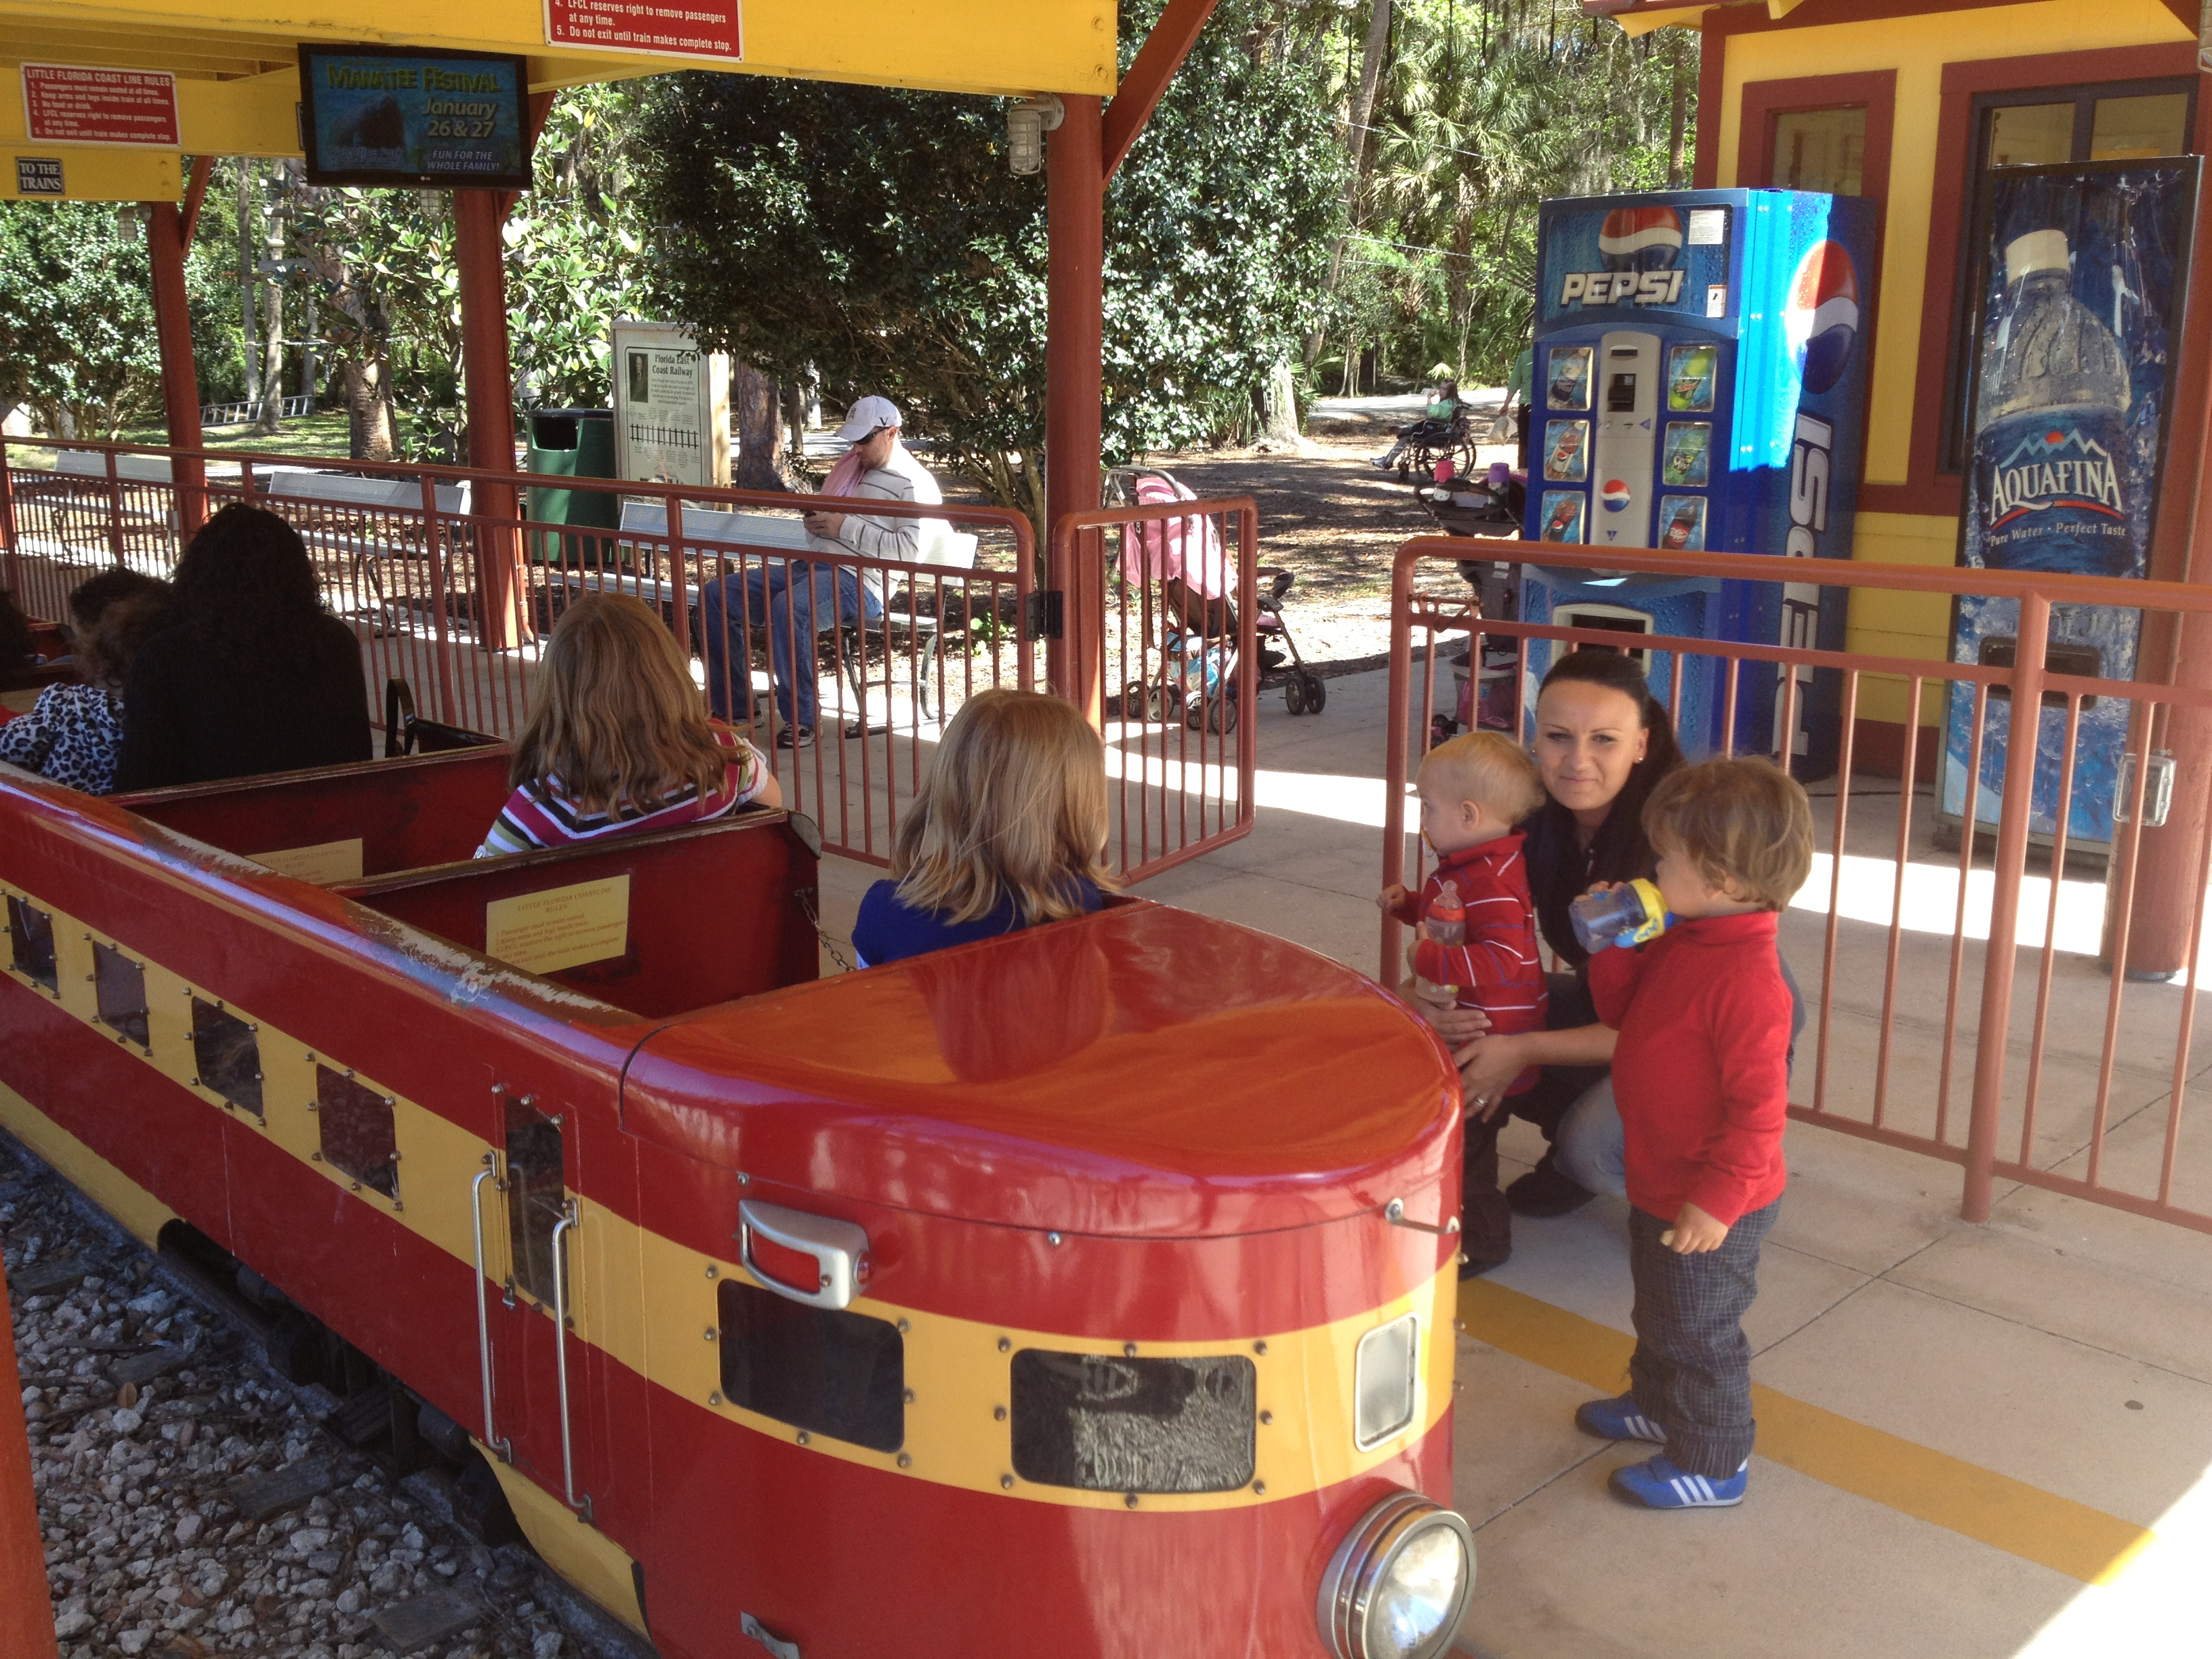 Things to Do with Kids in Sanford FL – The Central Florida Zoo